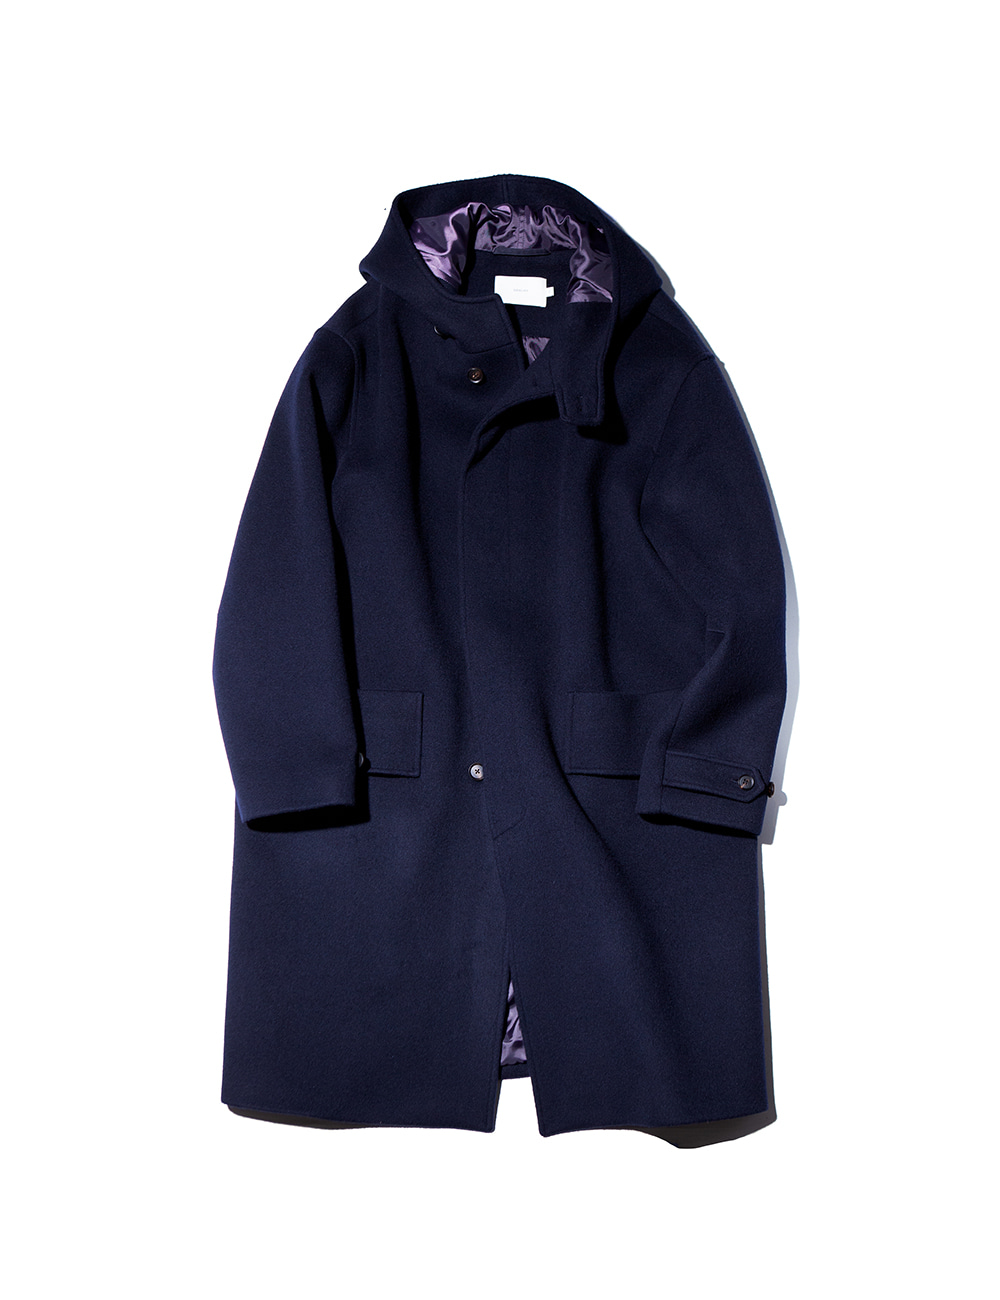 [Ourselves] SOFT WOOL HOODED COAT (Deep navy)